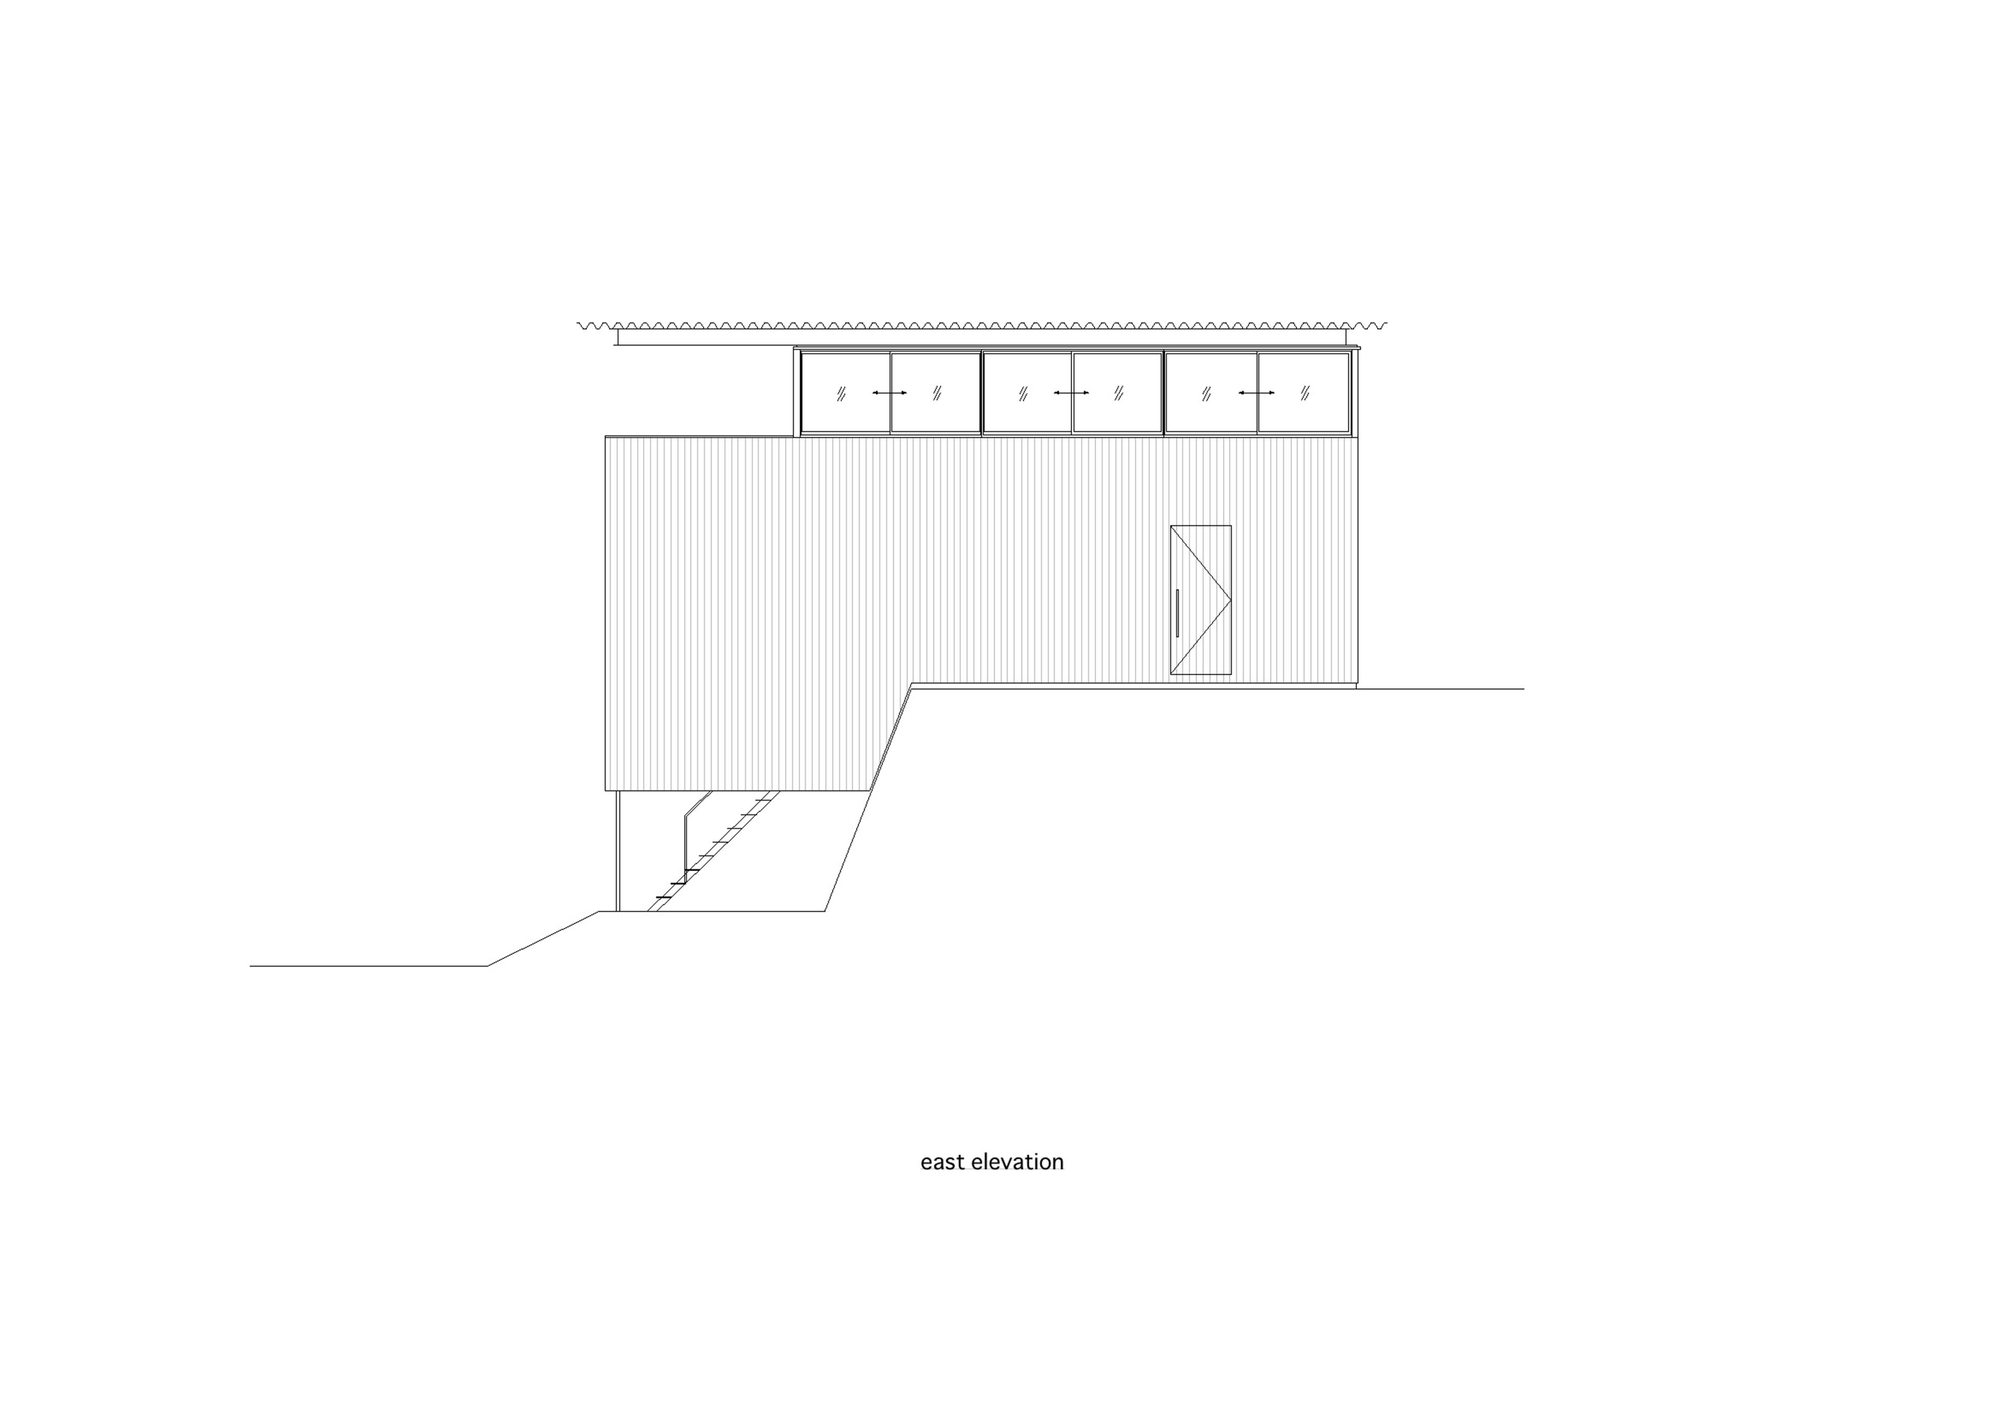 540ea143c07a808f0a000155_house-in-miyake-hidetaka-nakahara-architects-yoshio-ohno-architects_east_elevation